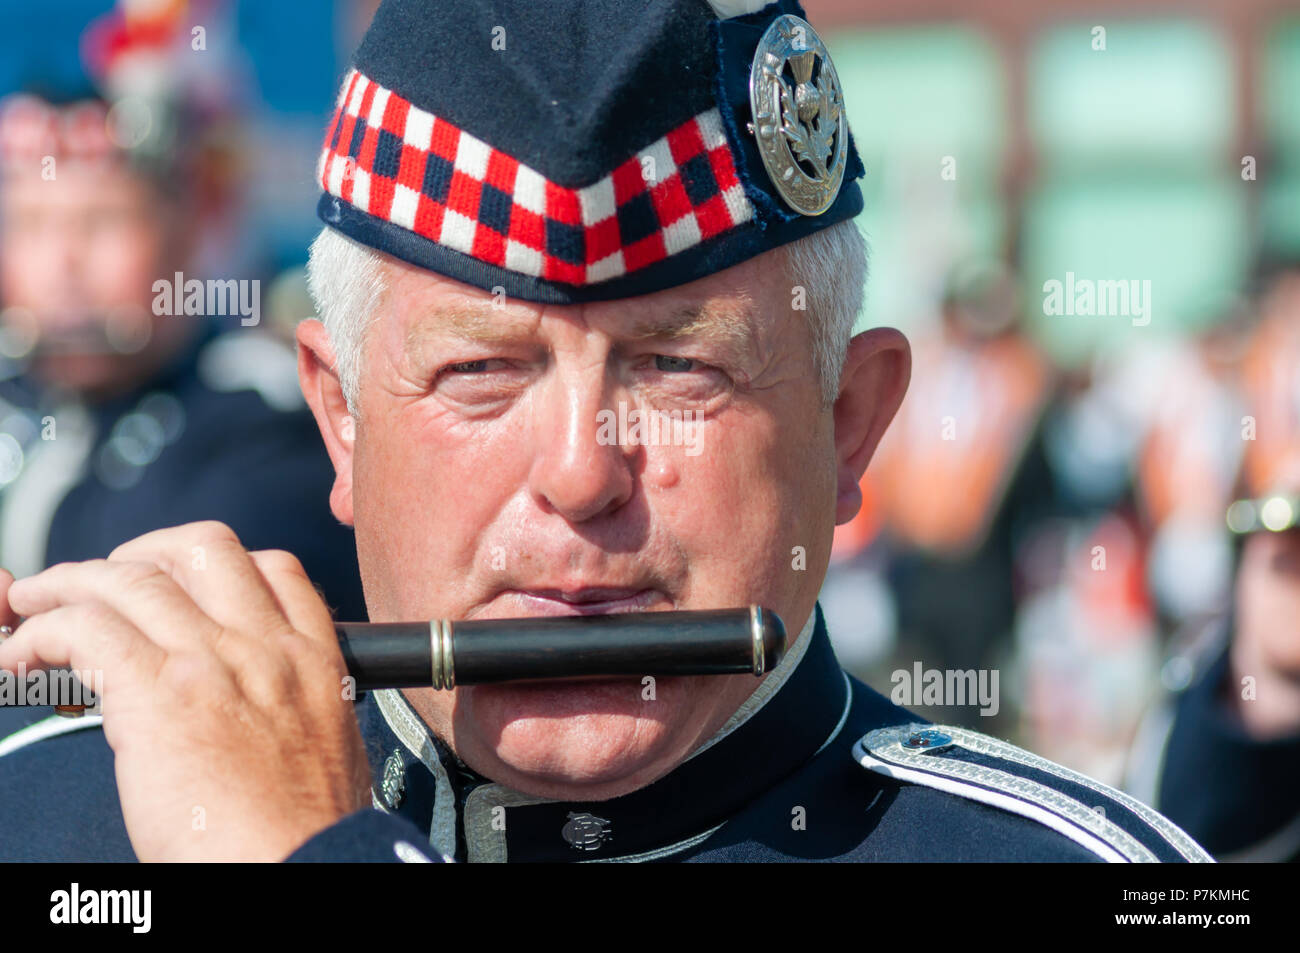 Glasgow, Scotland, UK. 7th July, 2018. A male band member wearing a uniform and playing the flute in the annual Orange Walk through the streets of the city to mark the victory of Prince William of Orange over King James II at the Battle of the Boyne in 1690. Credit: Skully/Alamy Live News - Stock Image